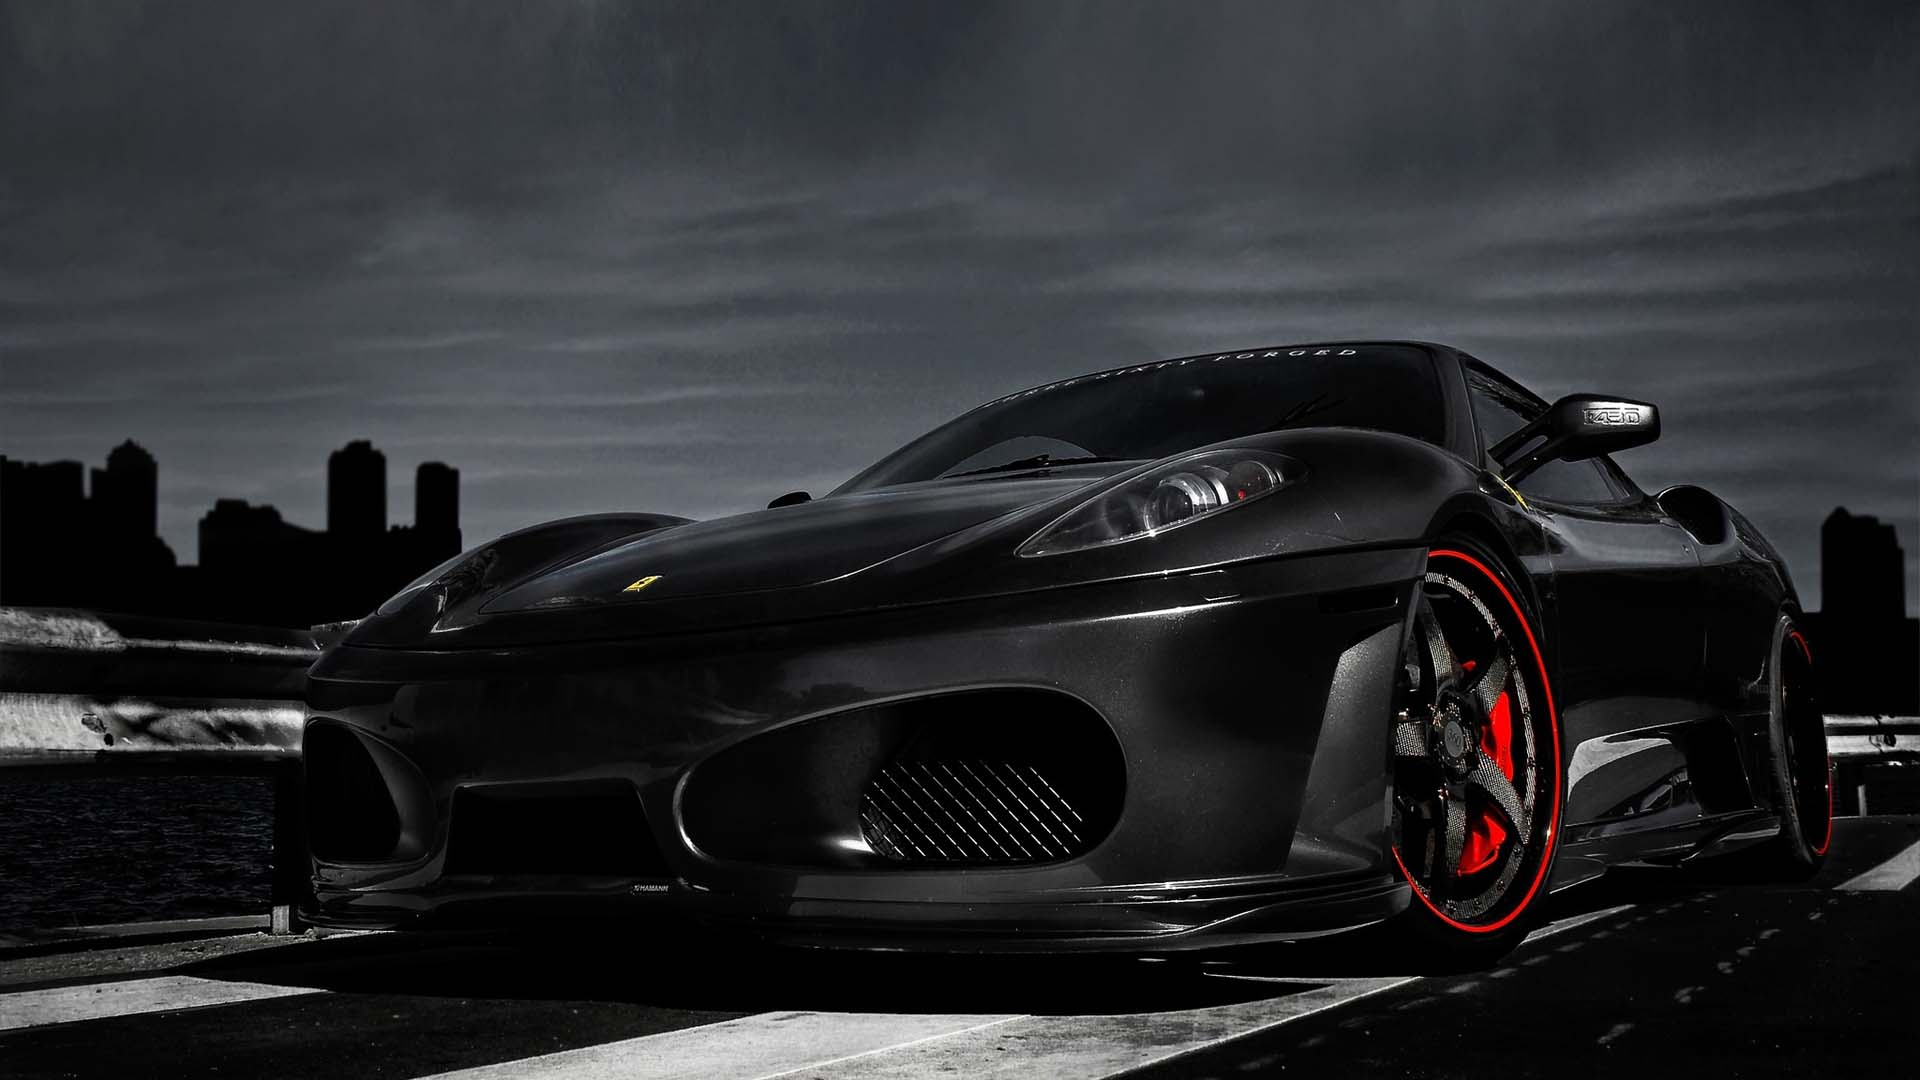 Black Ferrari Cars Wallpapers Hd